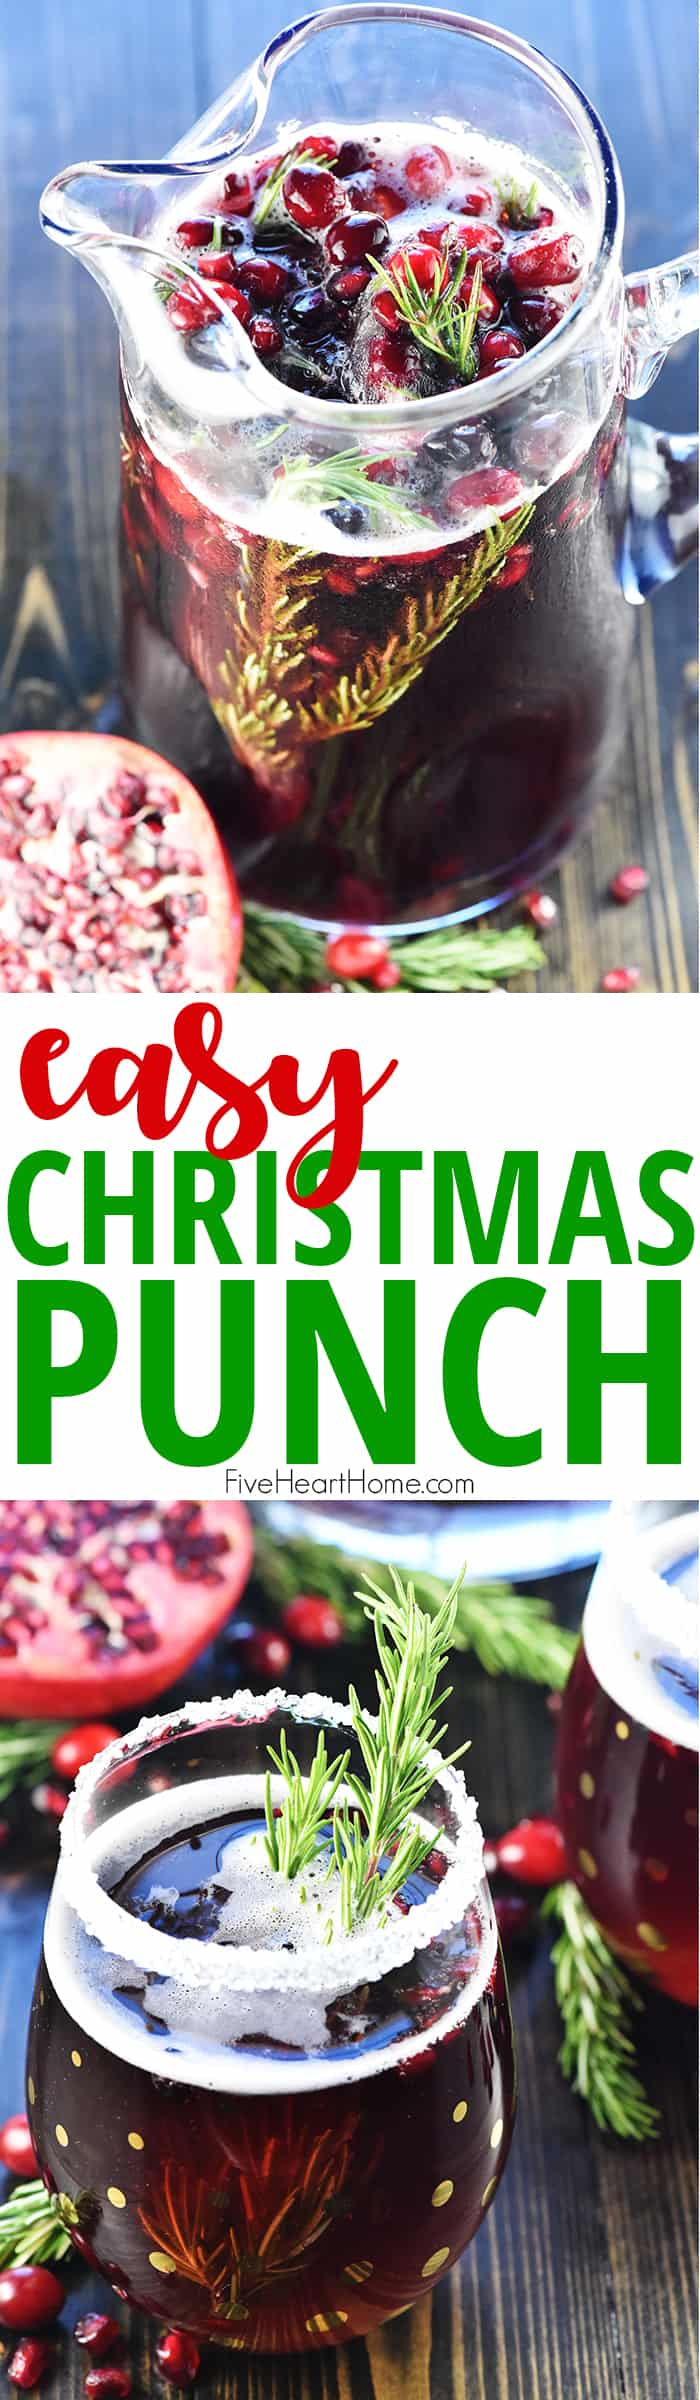 Easy Christmas Punch Collage with Text Overlay